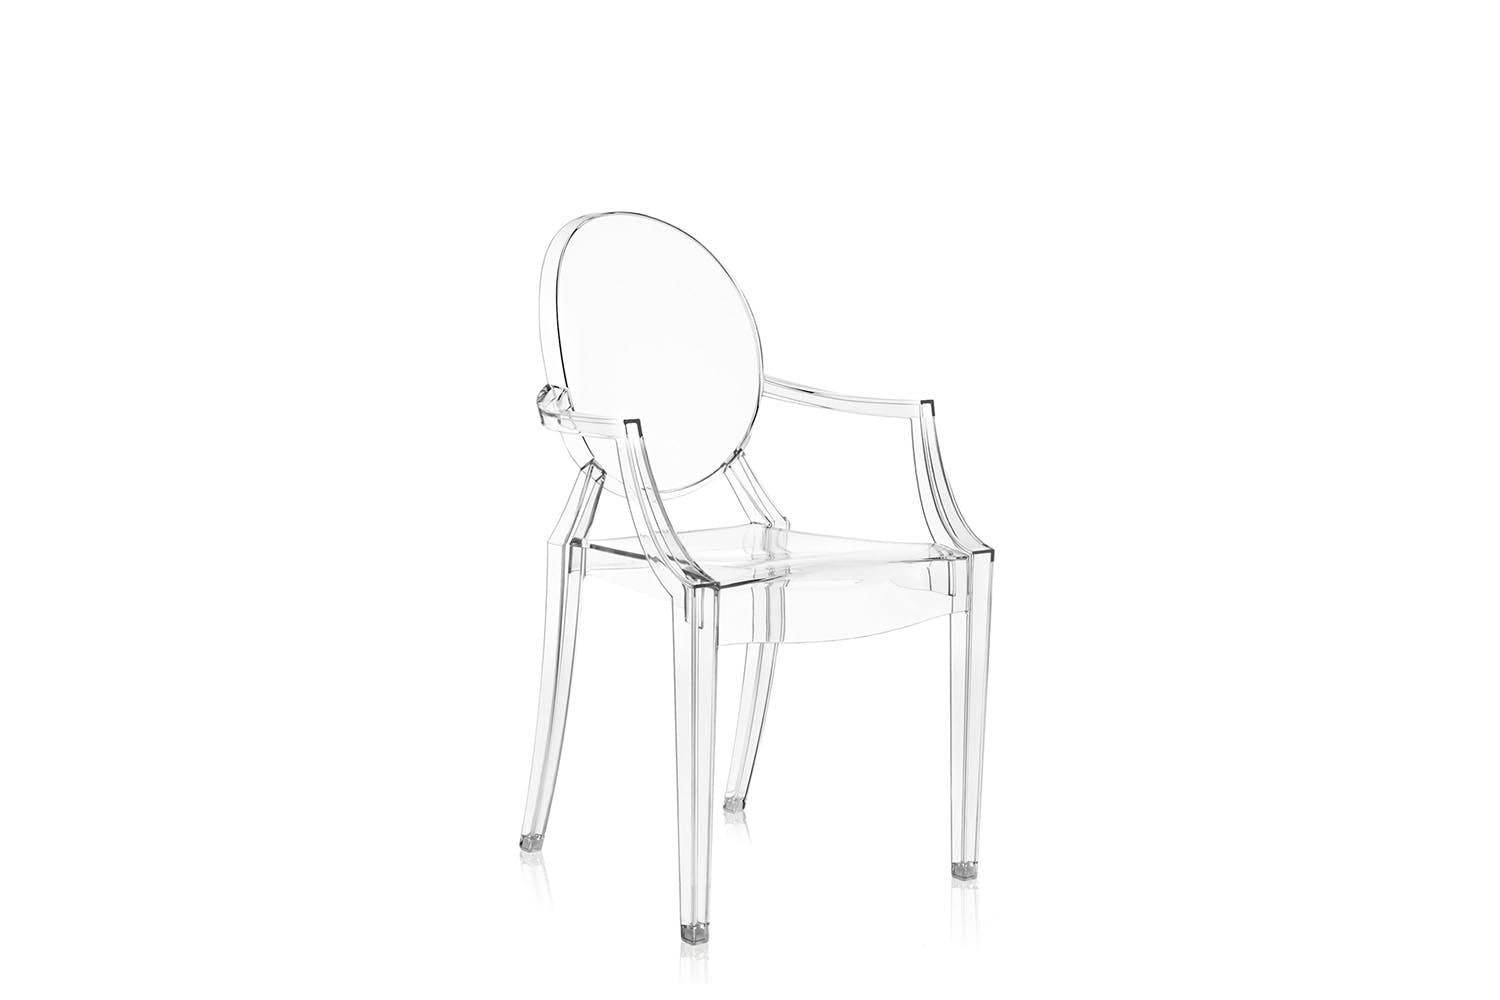 louis ghost chair with arms by philippe starck for kartell space furniture. Black Bedroom Furniture Sets. Home Design Ideas